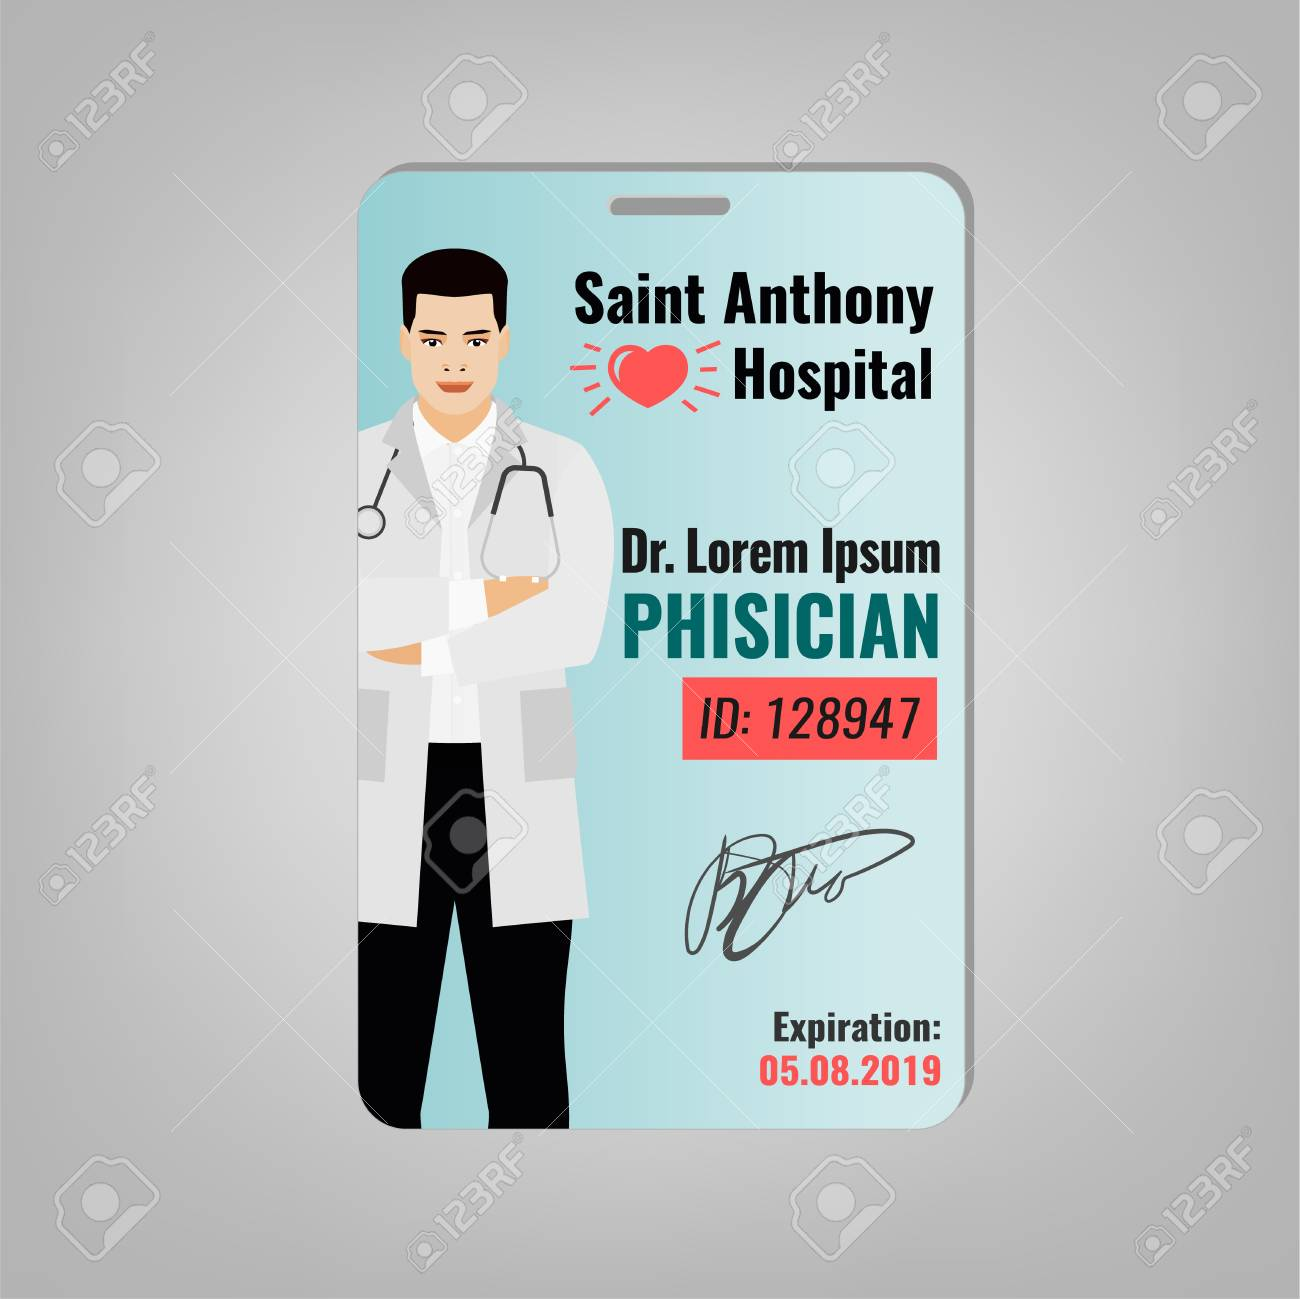 Doctors ID Card With Hospital Logo And Phisician Image Medical Specialist Badge Template For Medicine